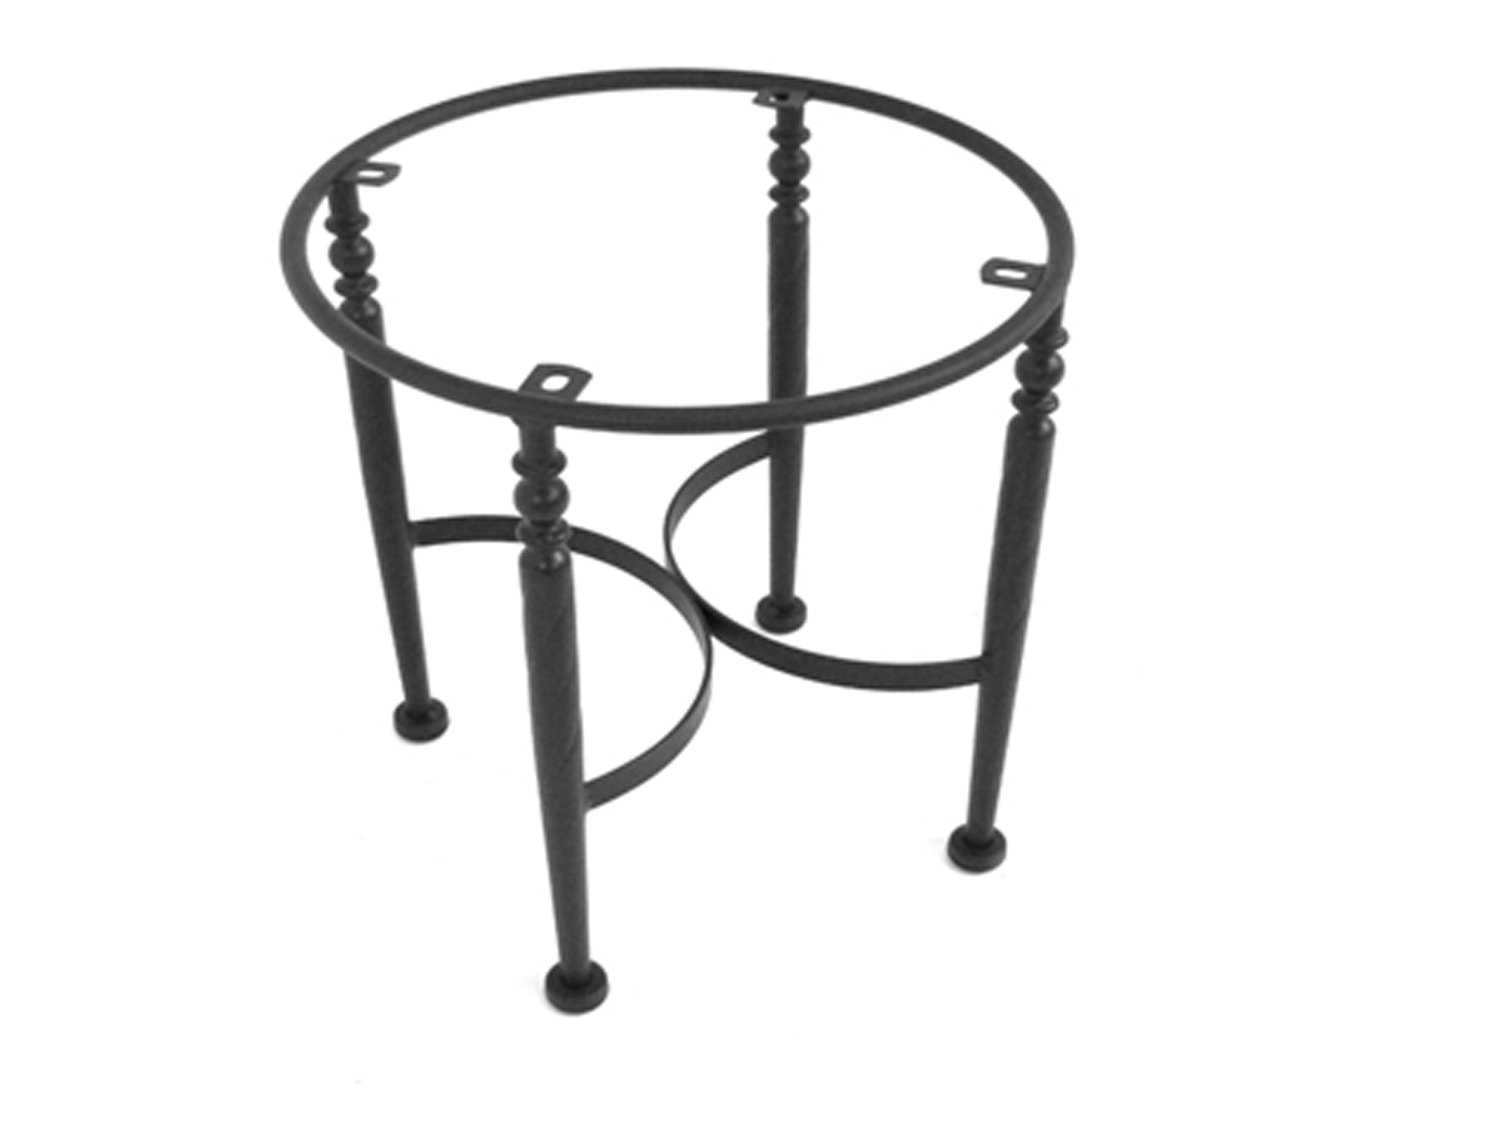 Meadowcraft wrought iron end table base for granite tops for Wrought iron table bases marble top